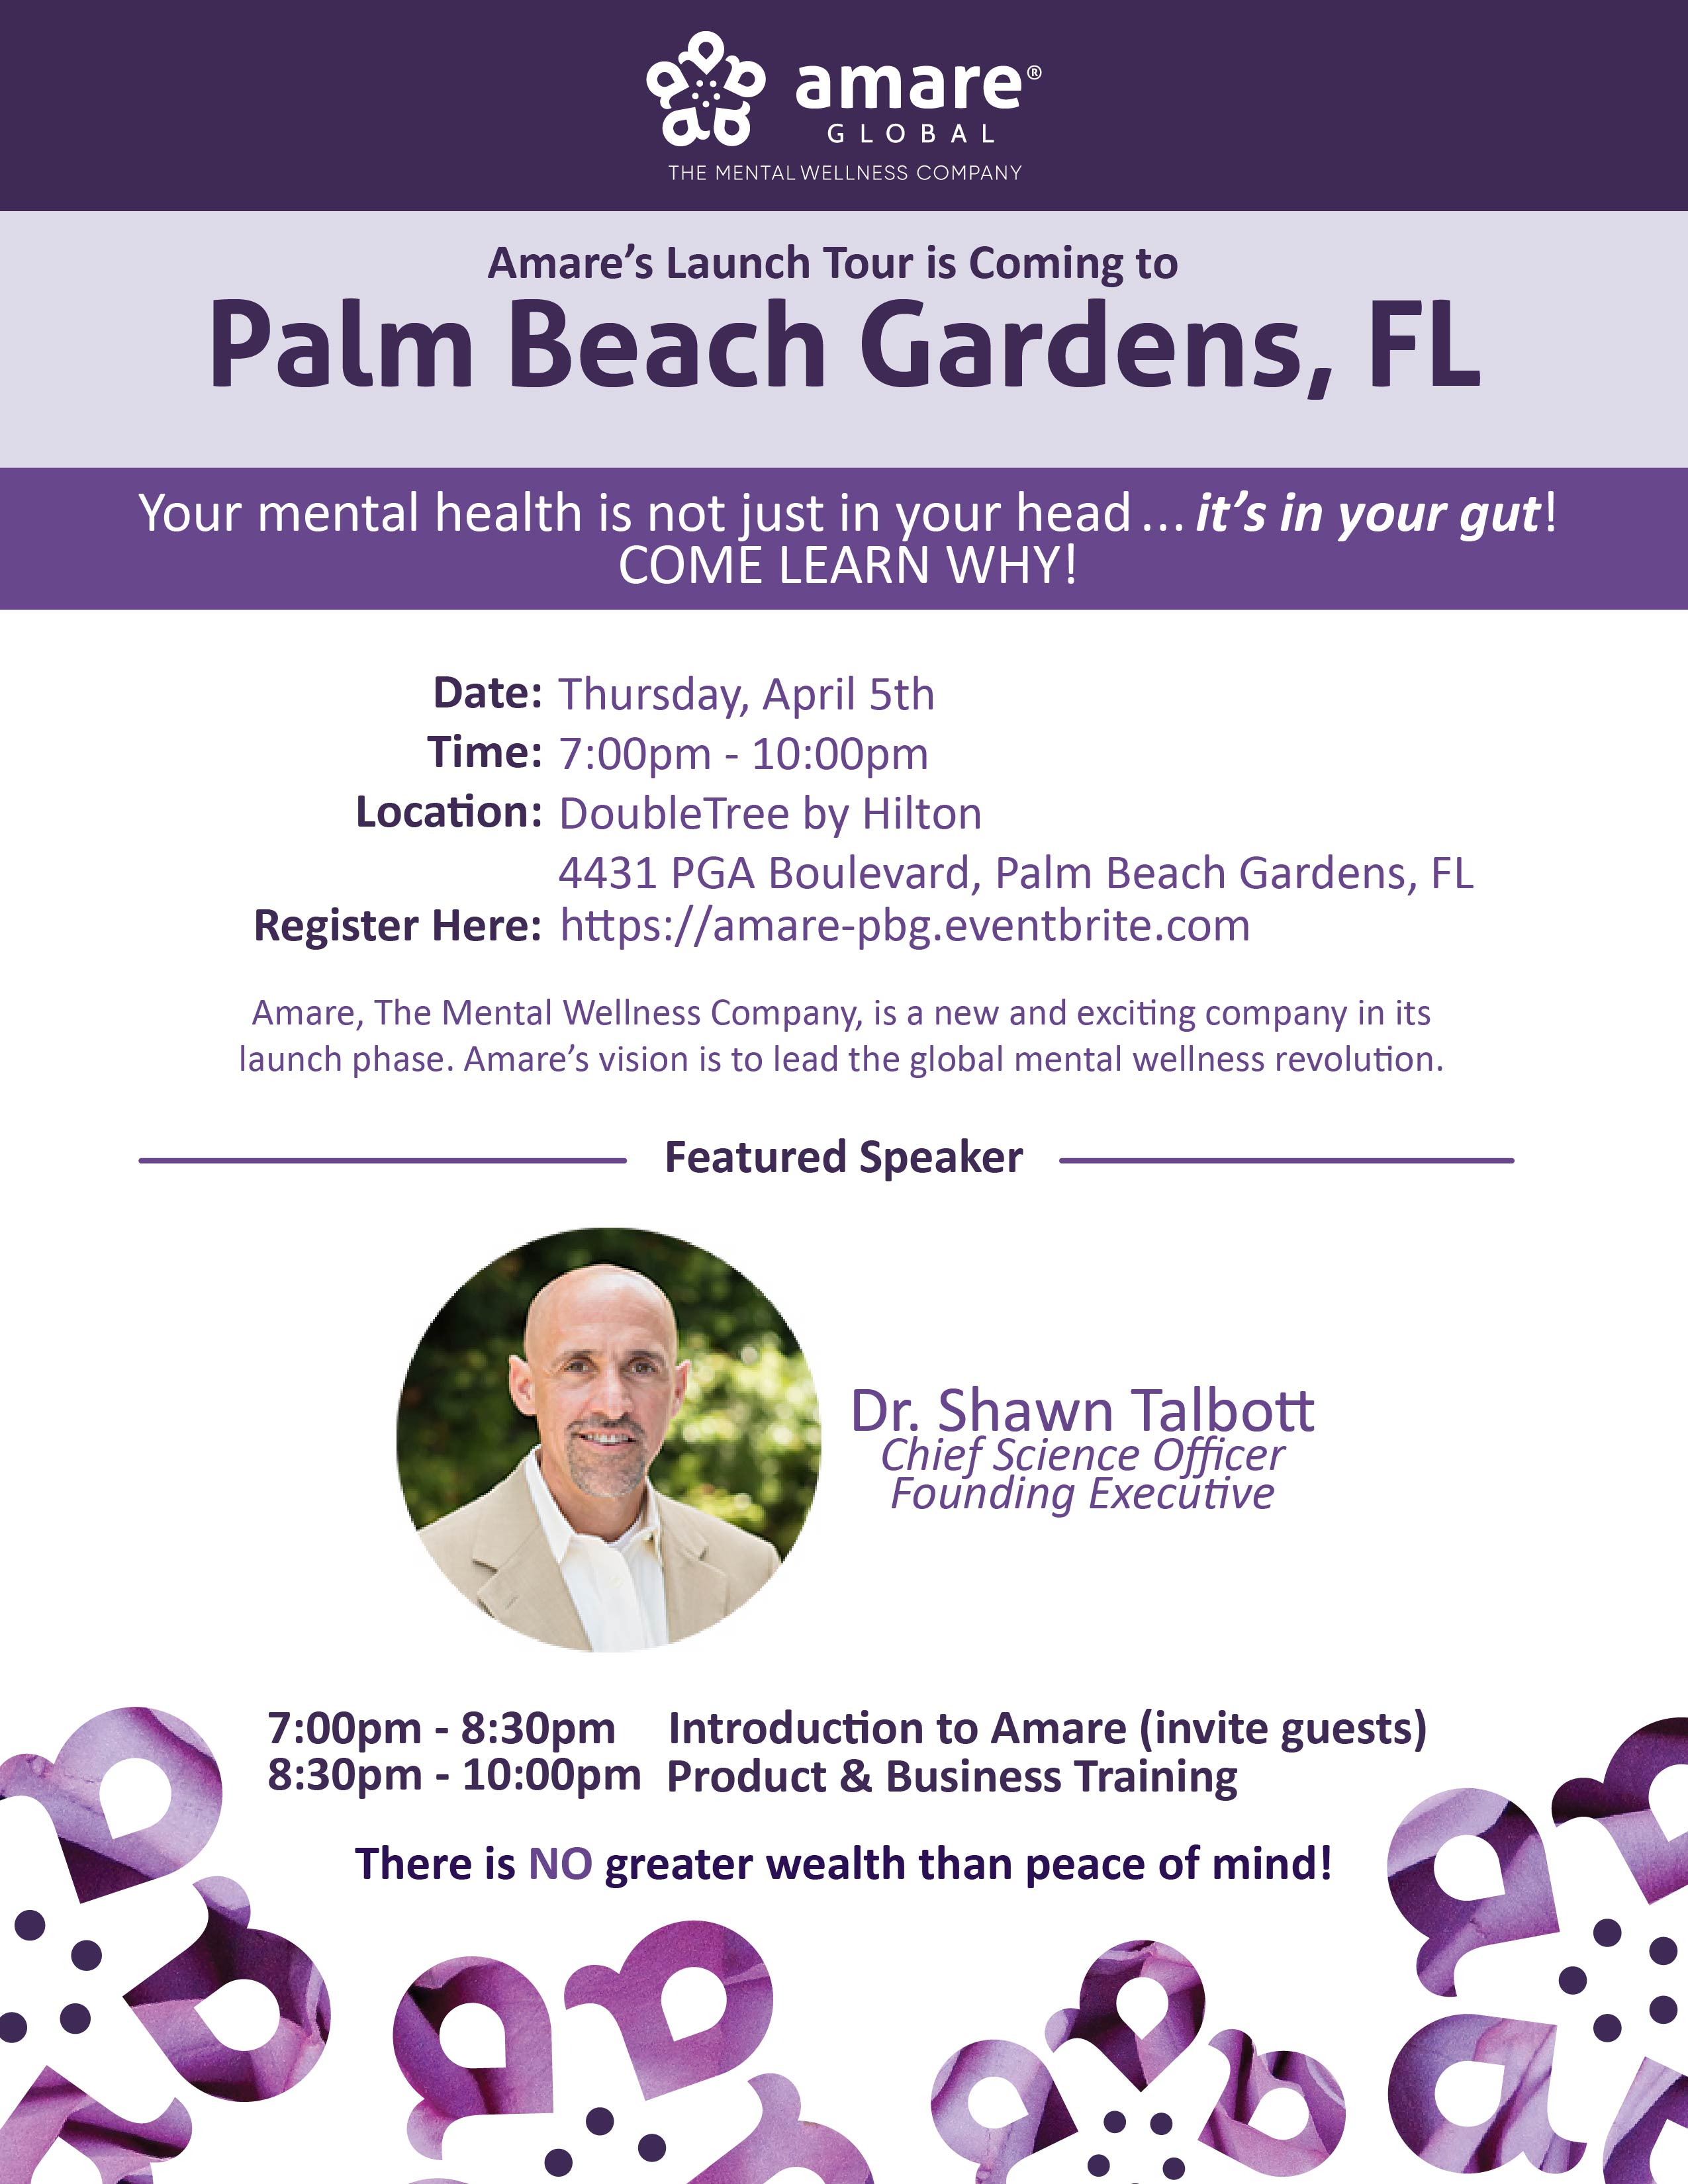 April 5th Palm Beach Gardens, FL Launch Tour Event